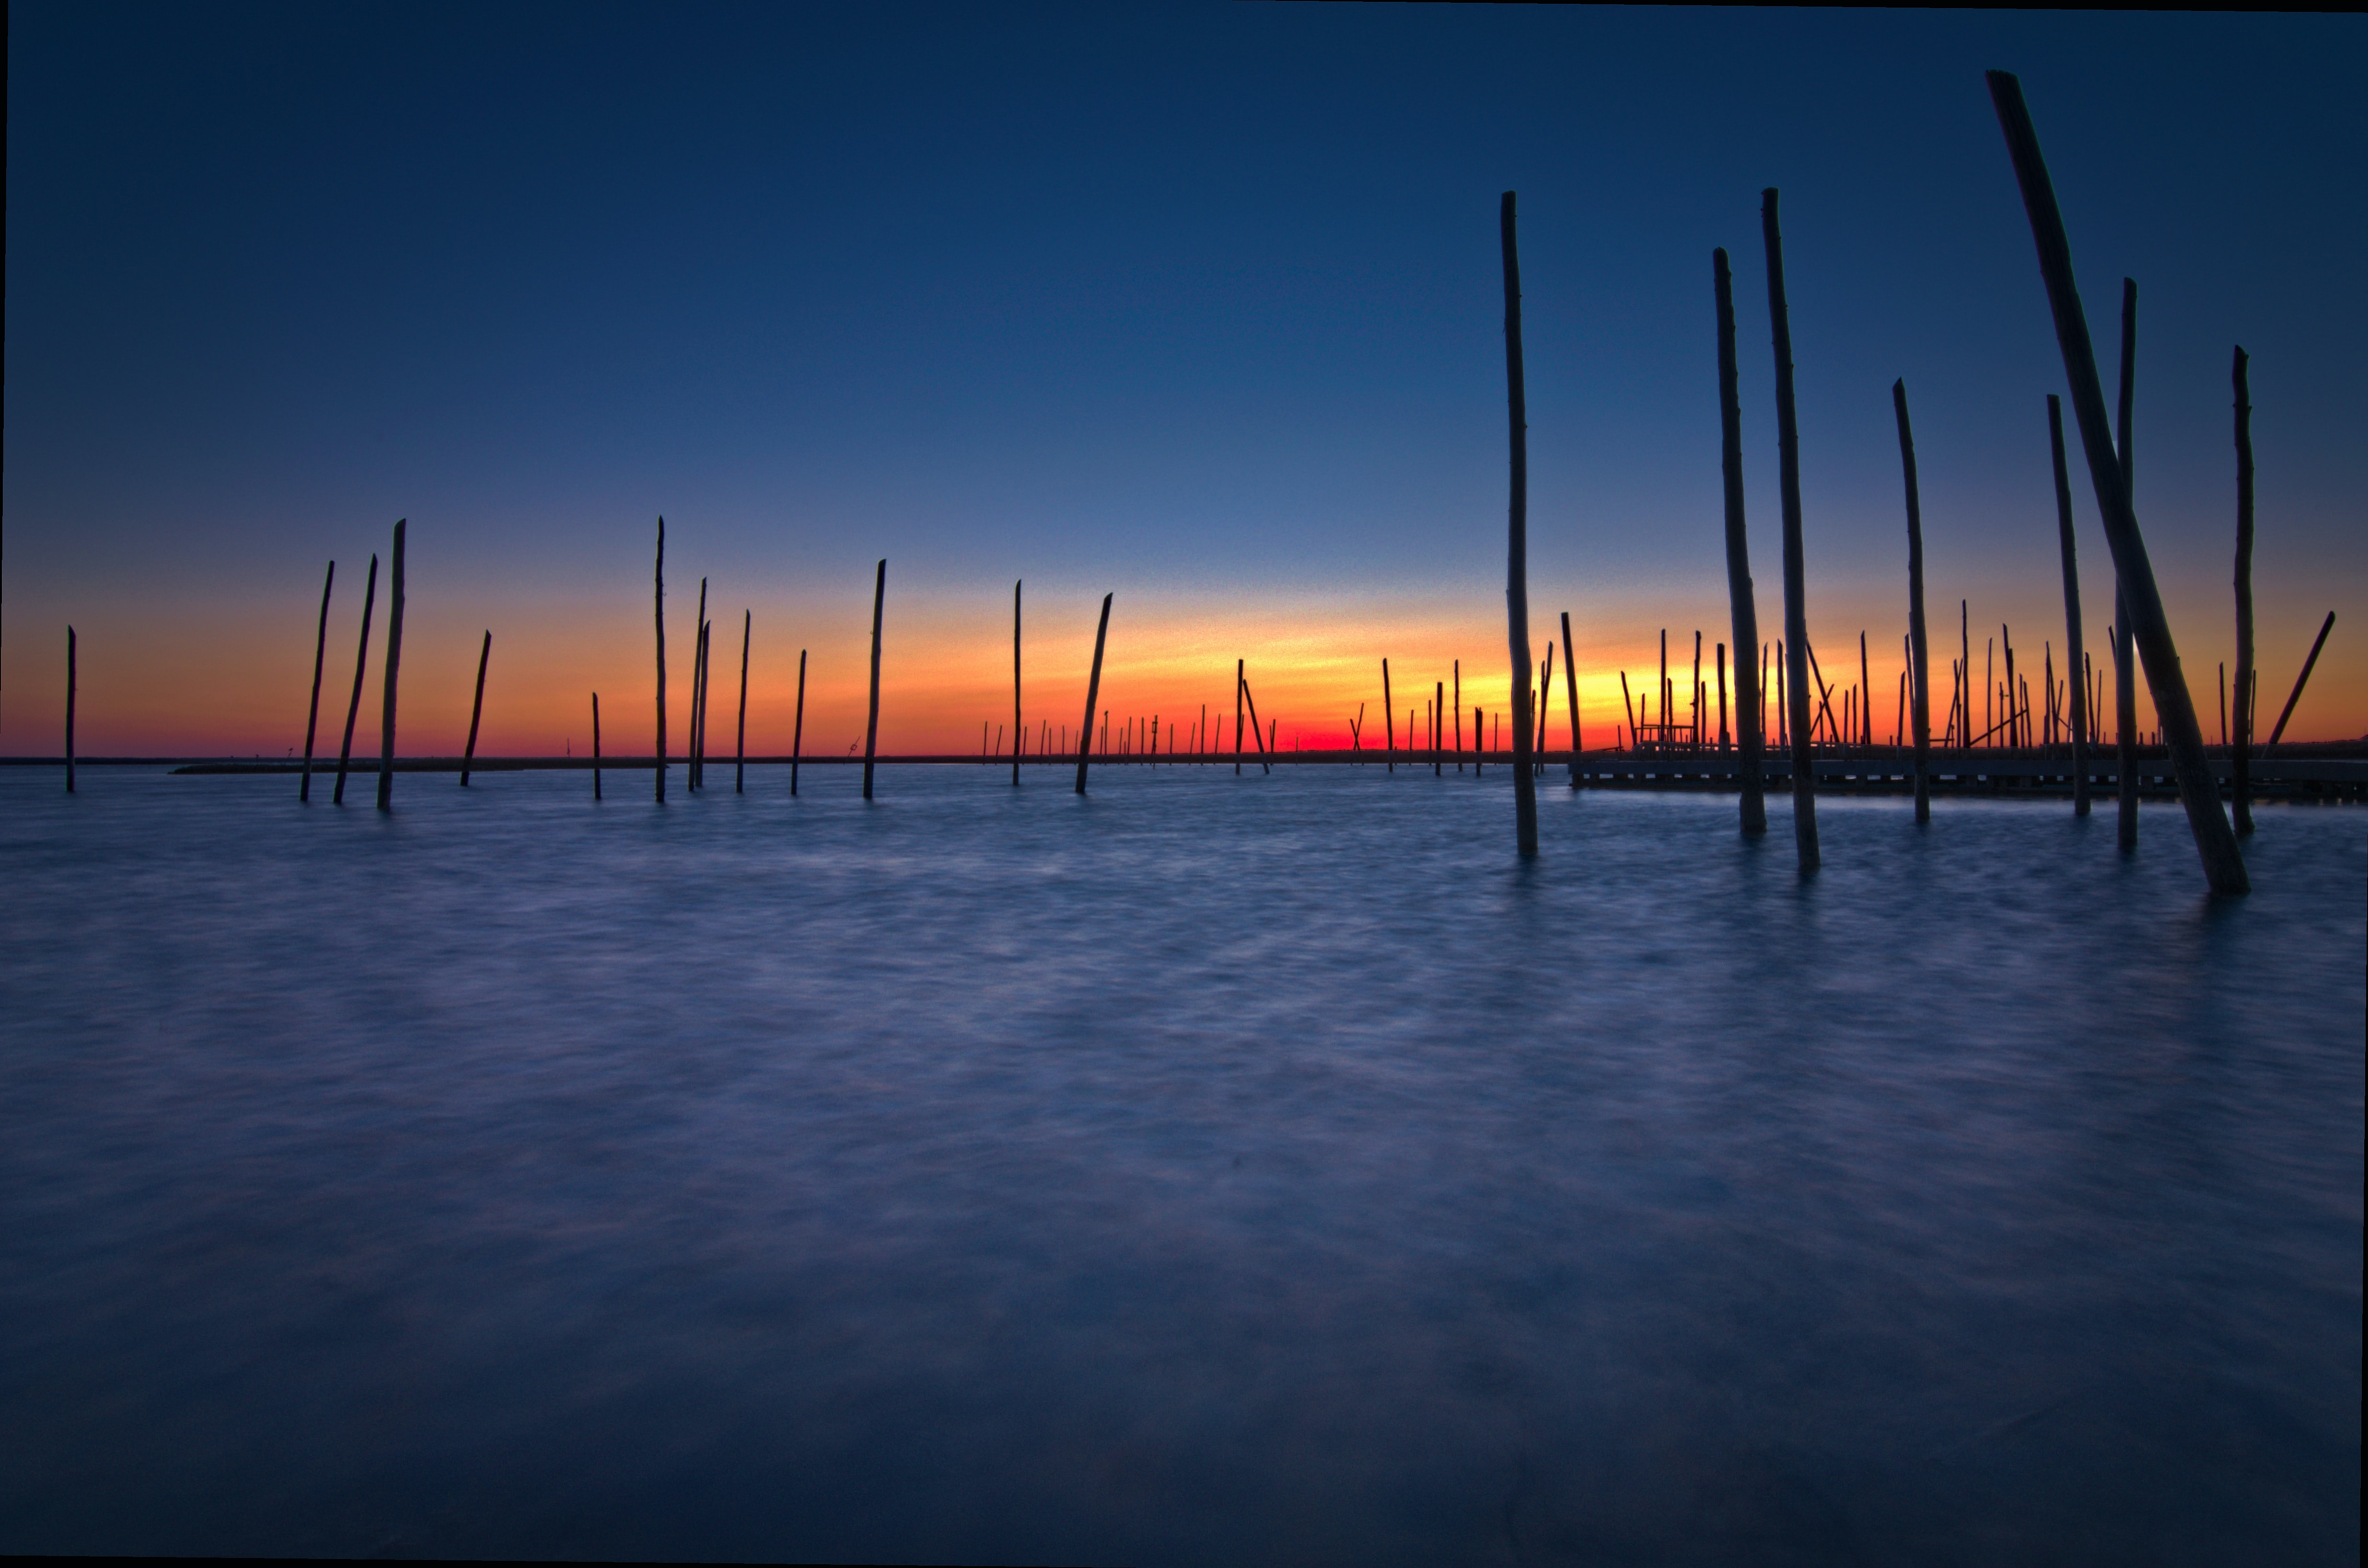 body of water with wooden sticks